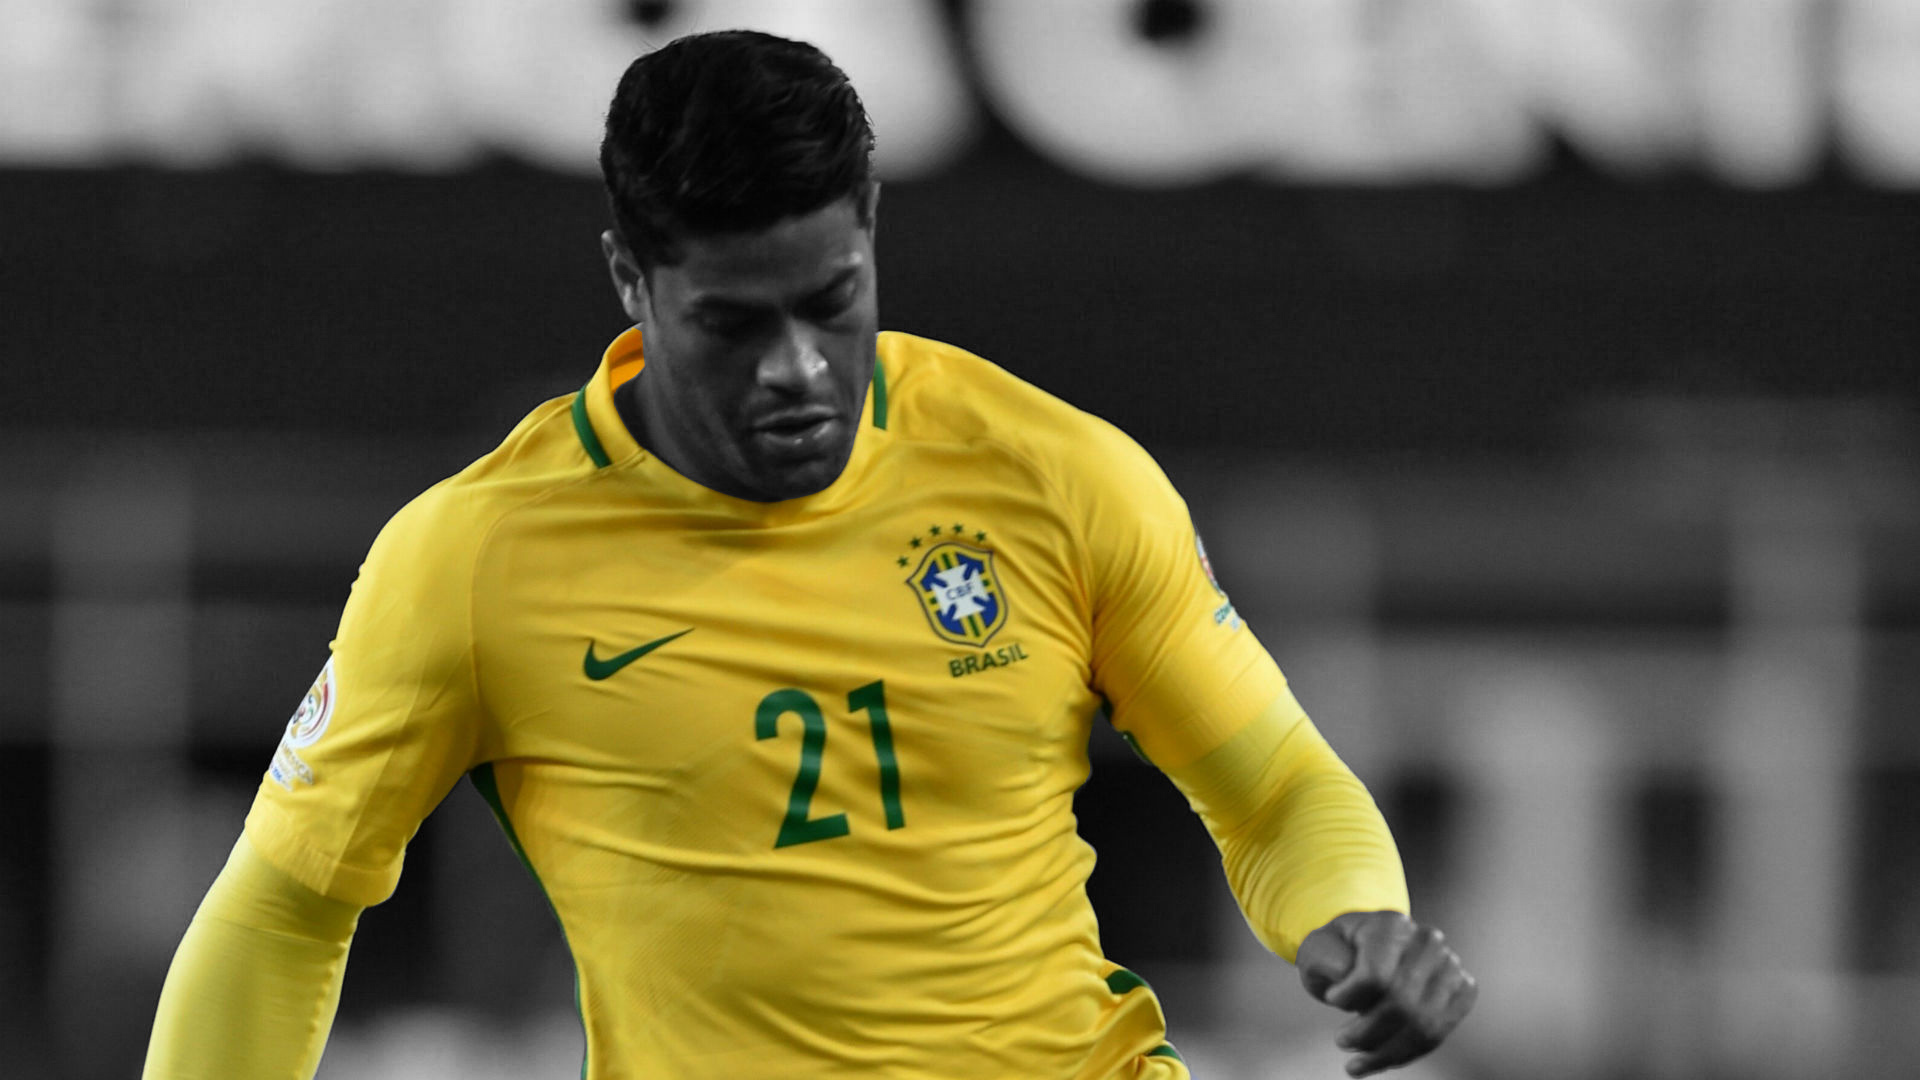 Hulk Has 'Always Supported Arsenal' & Dreams Of Premier League Move